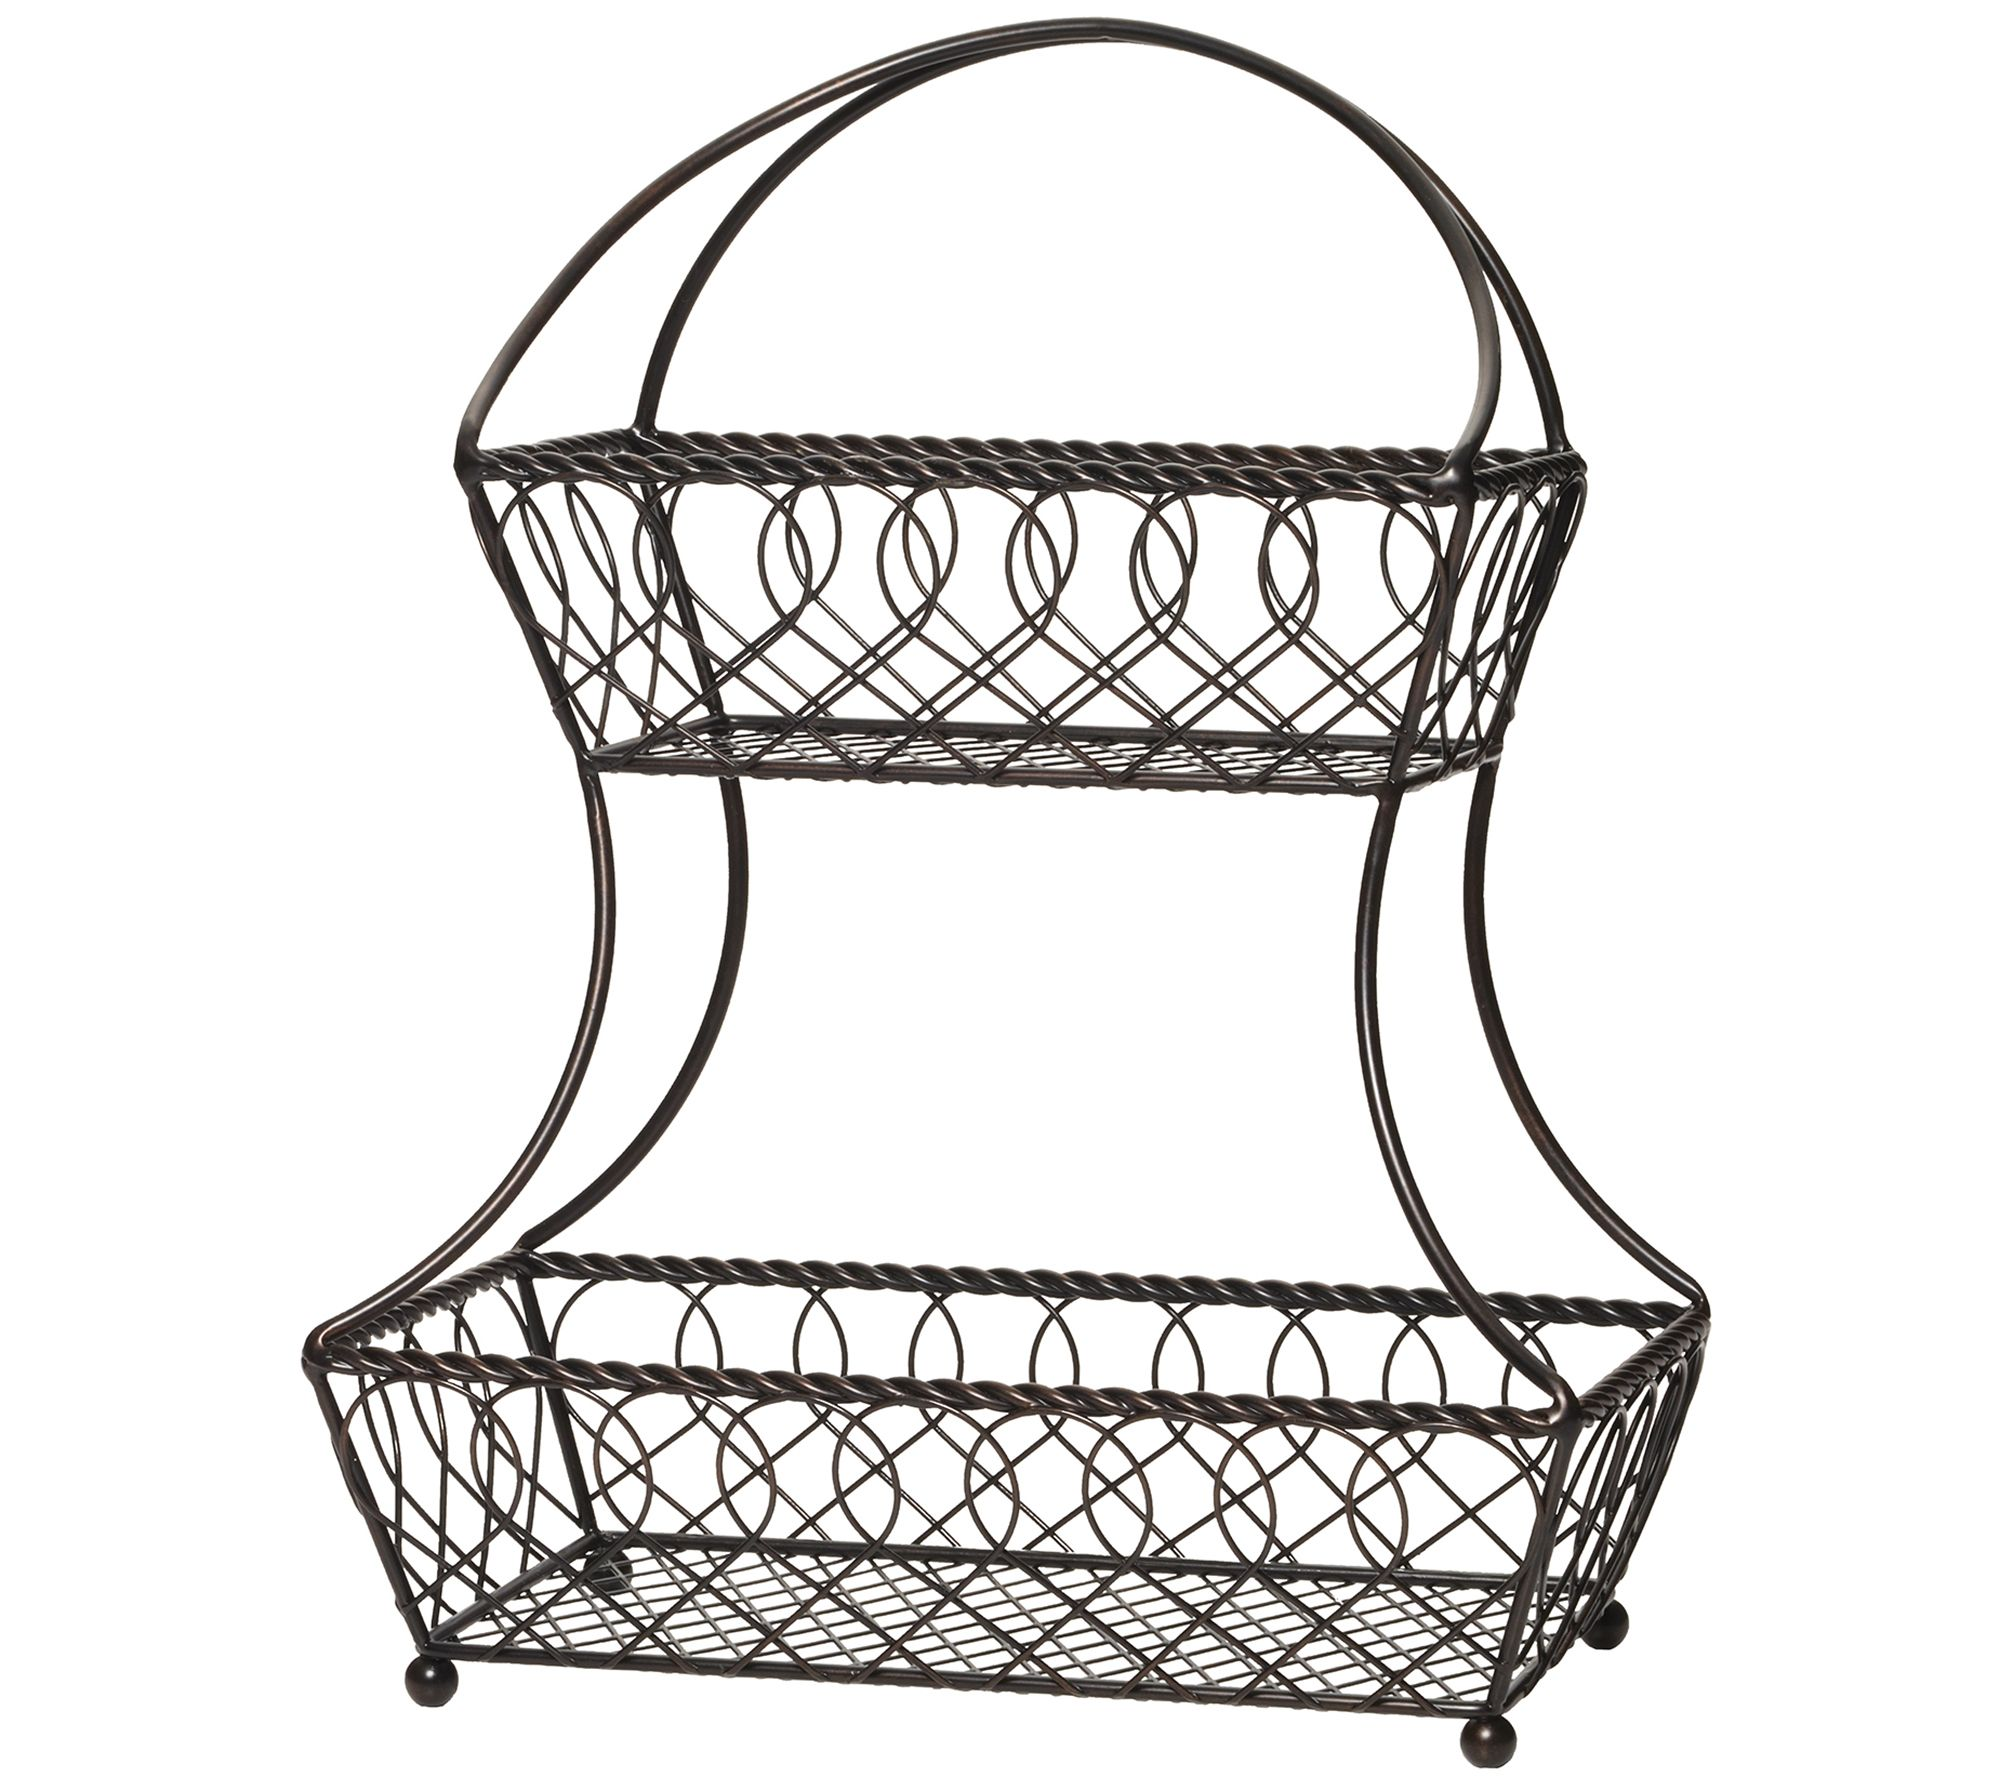 3 Tier Fruit Basket Stand. Simple Shabby Chic Iron Tier Fruit Basket ...